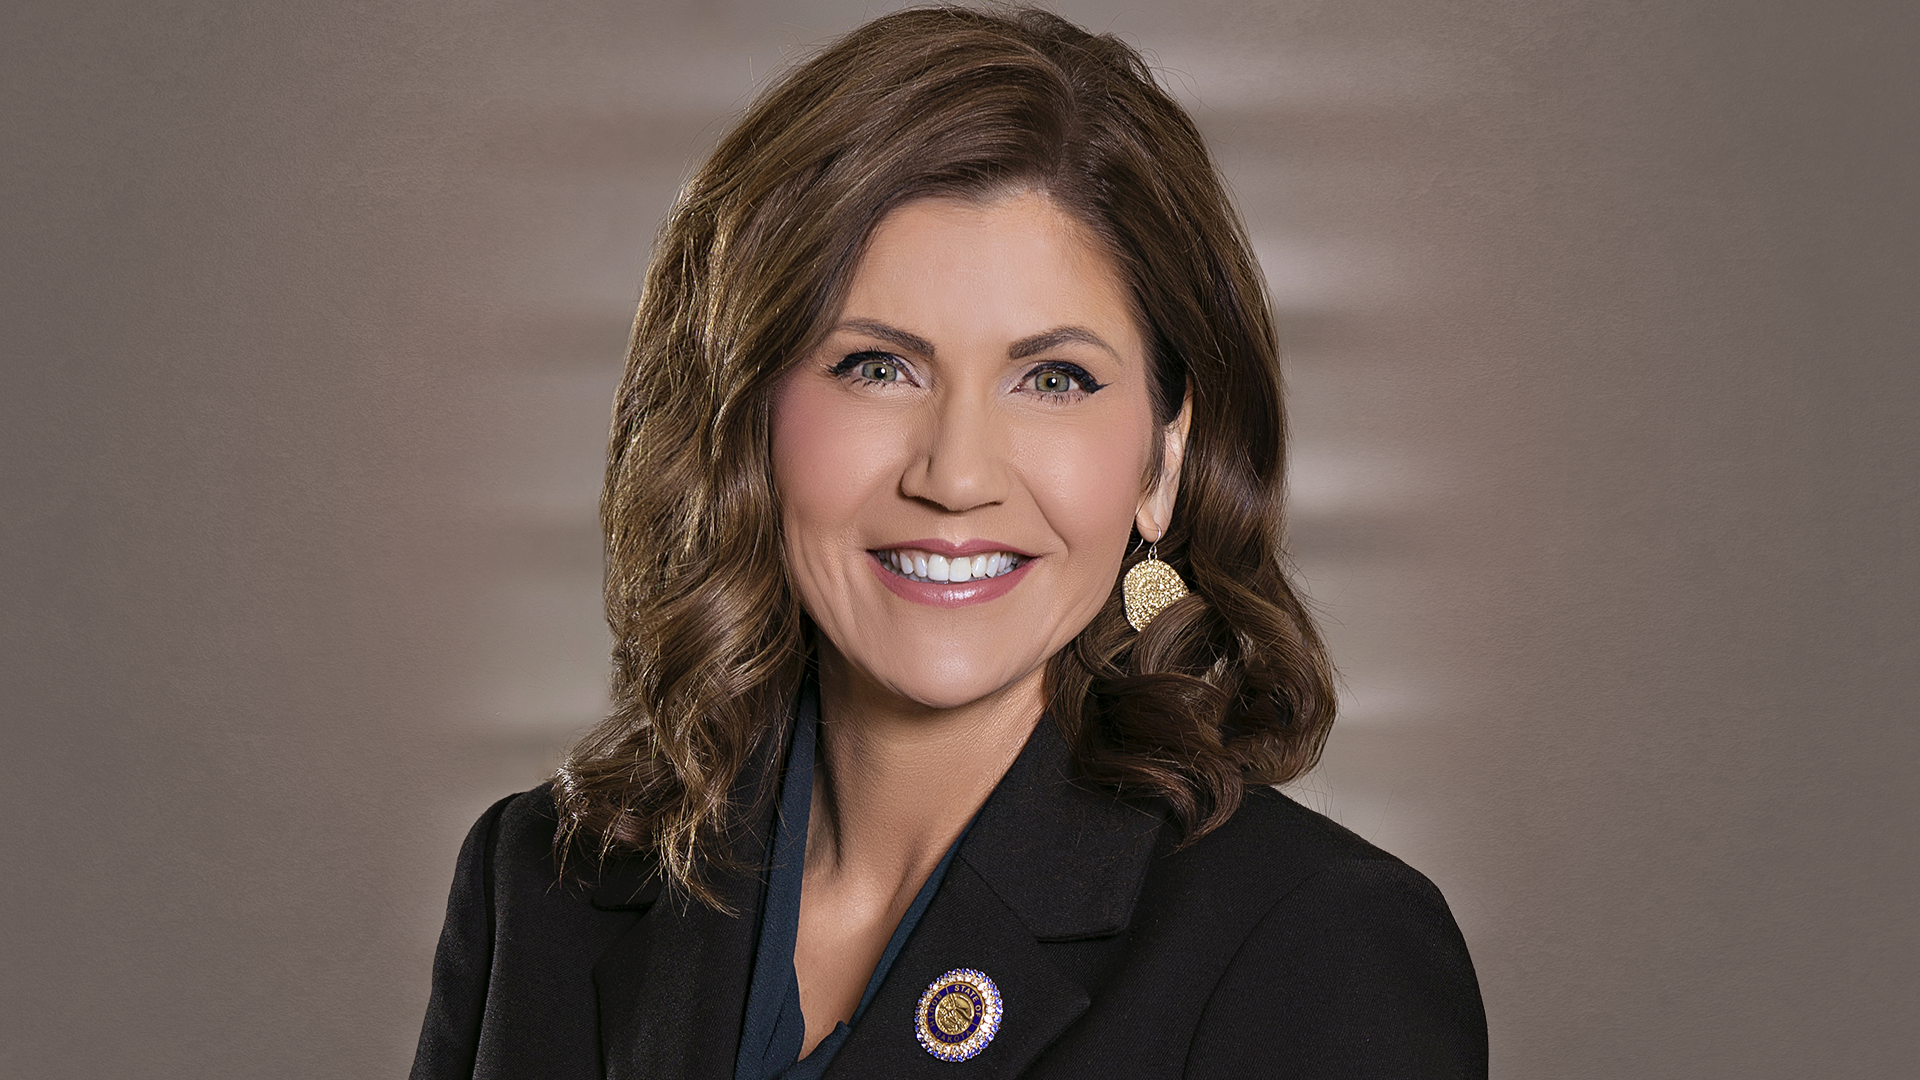 South Dakota's Feisty Governor Noem: 'Our Kids Are Going Back to School on Time'